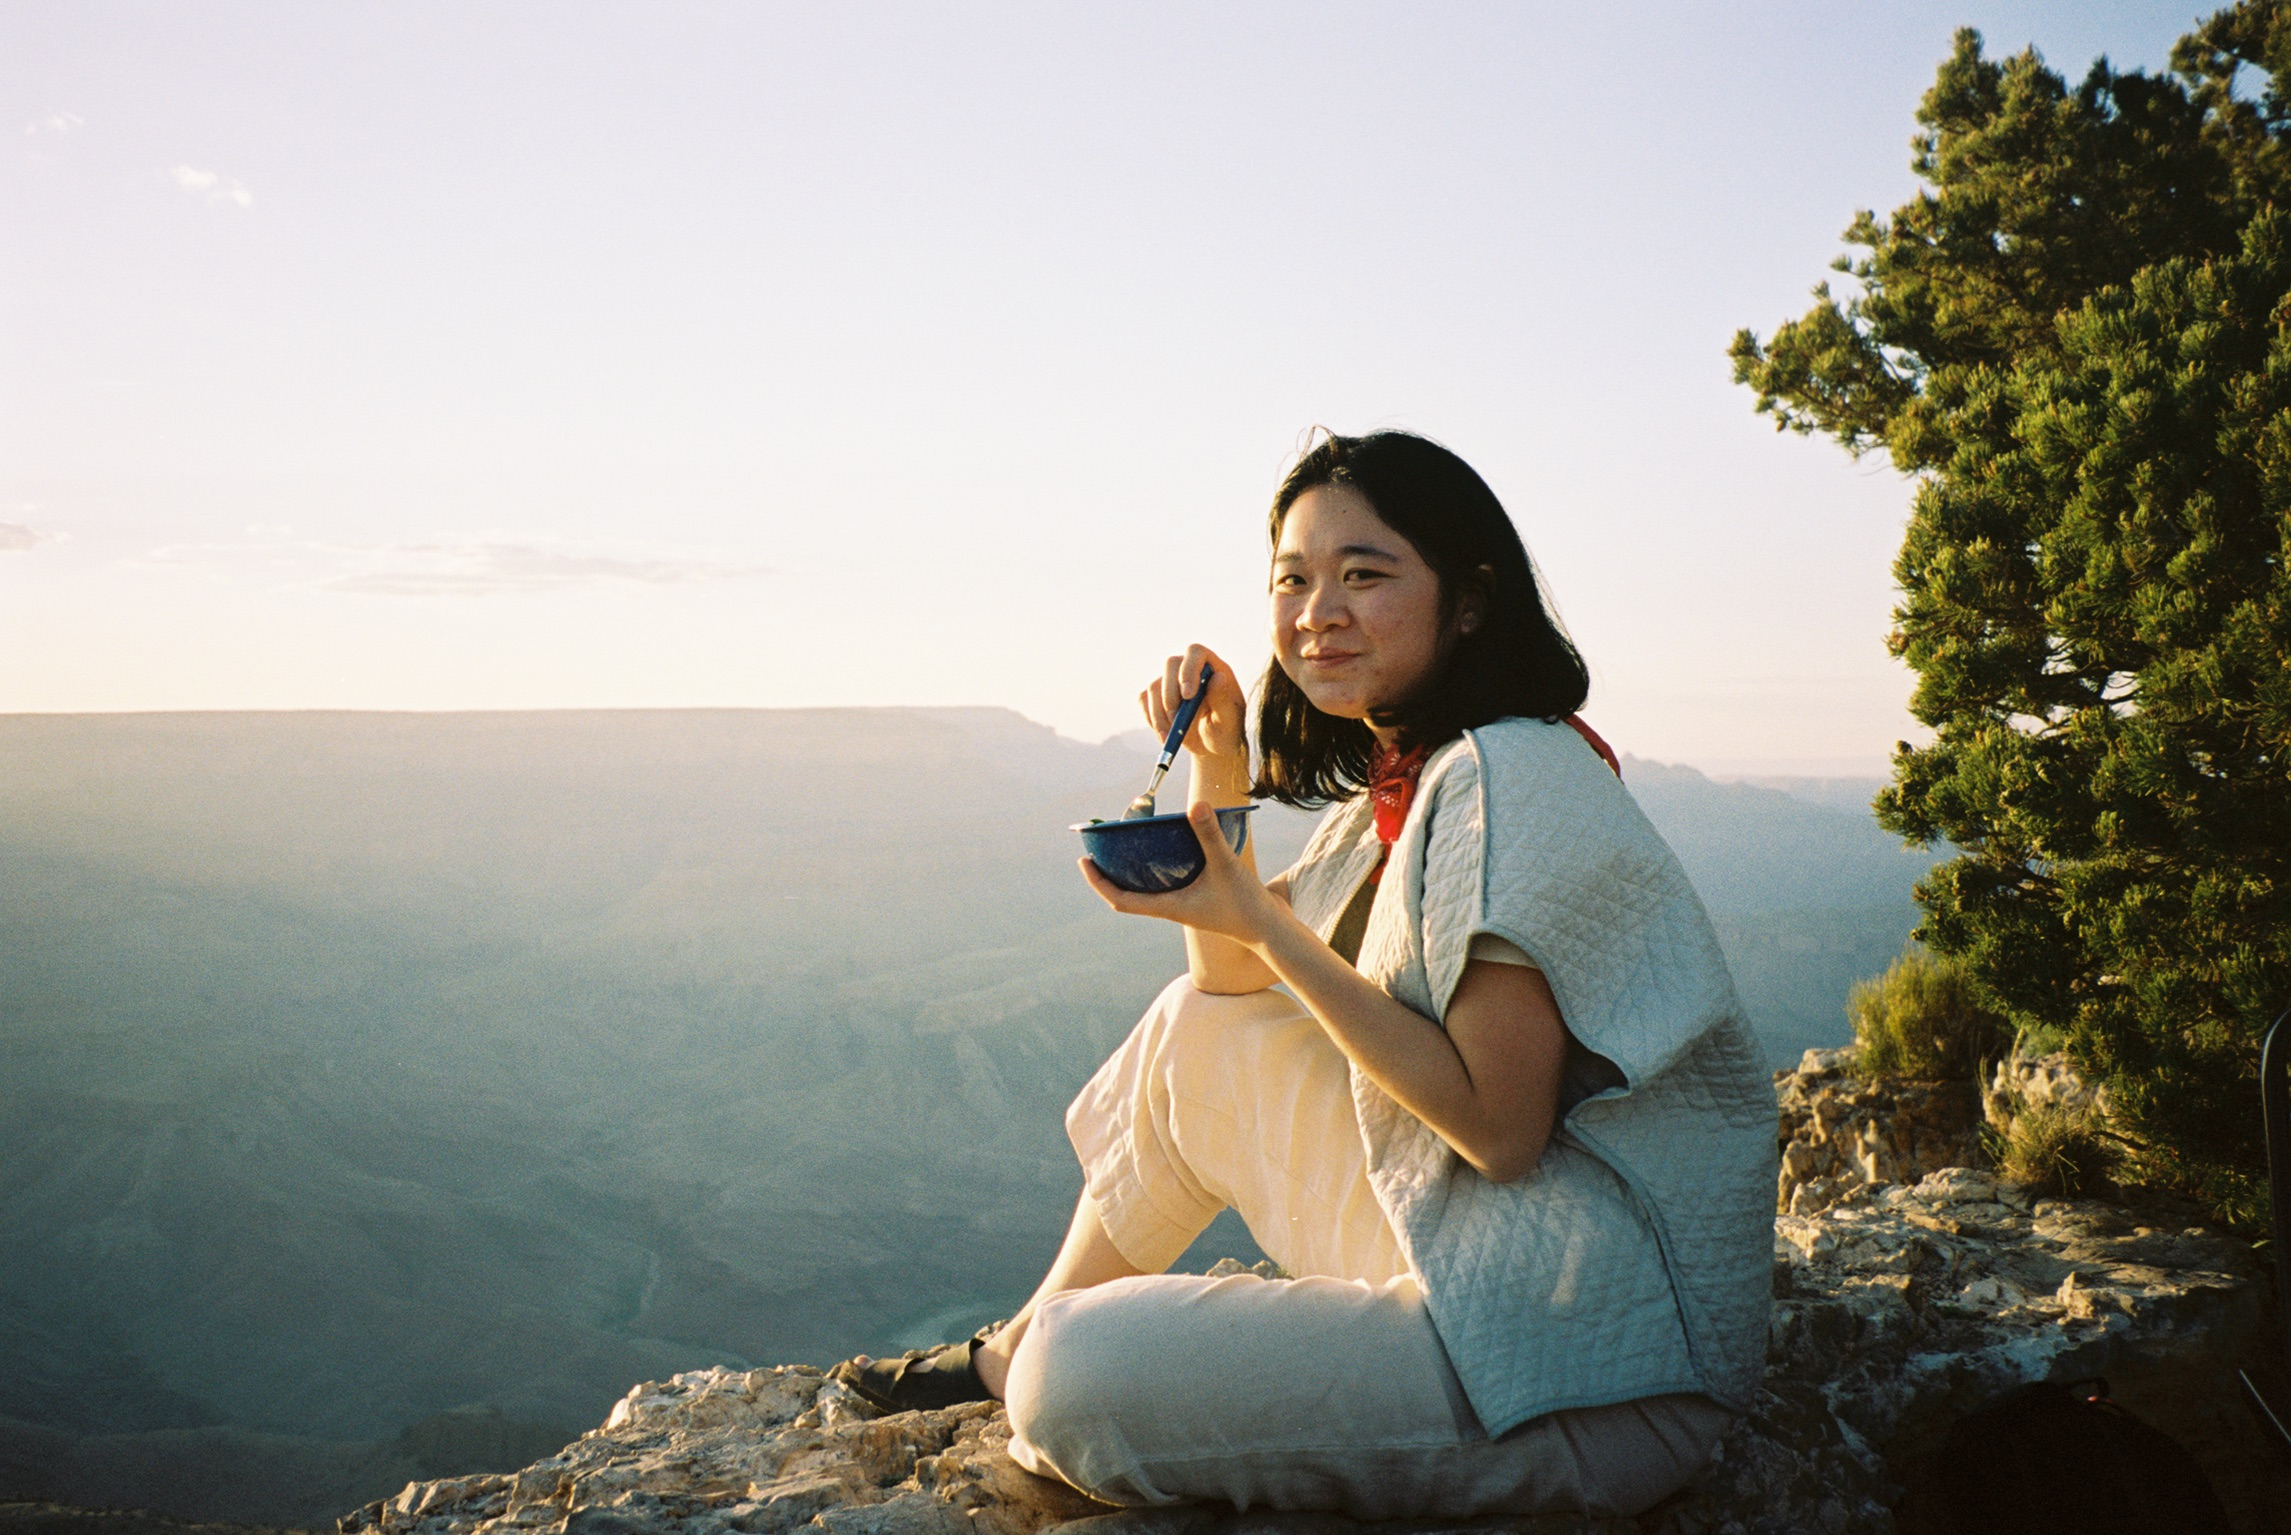 Jennelle overlooking the Grand Canyon, 2017.